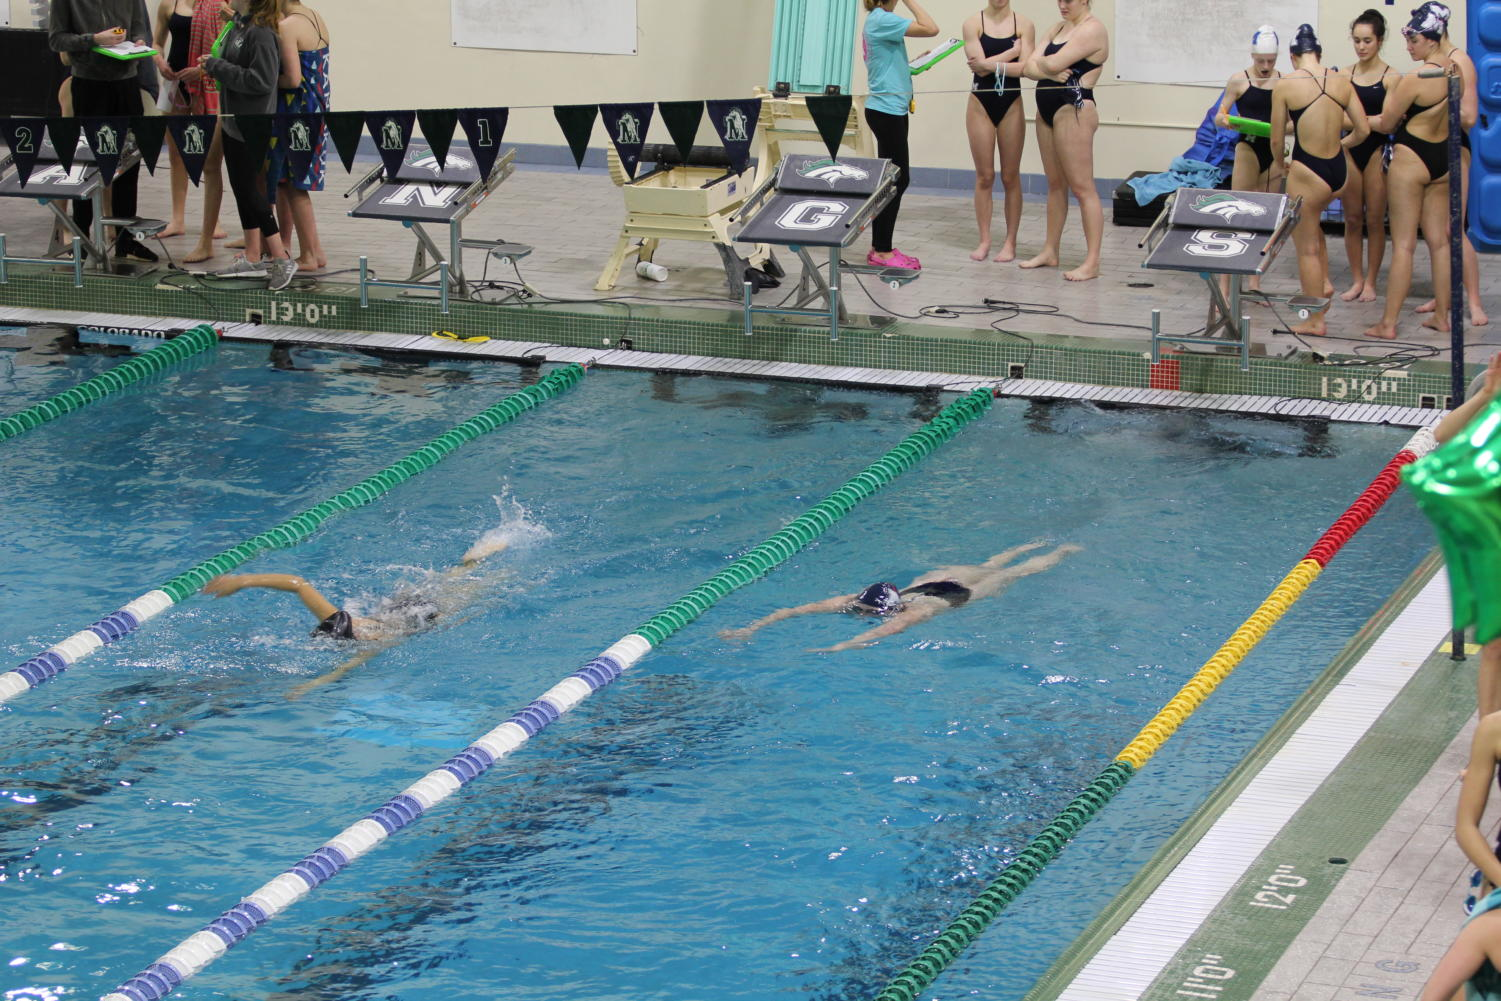 The+MHS+girls+swim+team+had+their+last+meet+against+Parkway+Central+on+Jan+24.+For+the+last+five+years%2C+the+team+has+gone+undefeated+in+their+meets.%0A